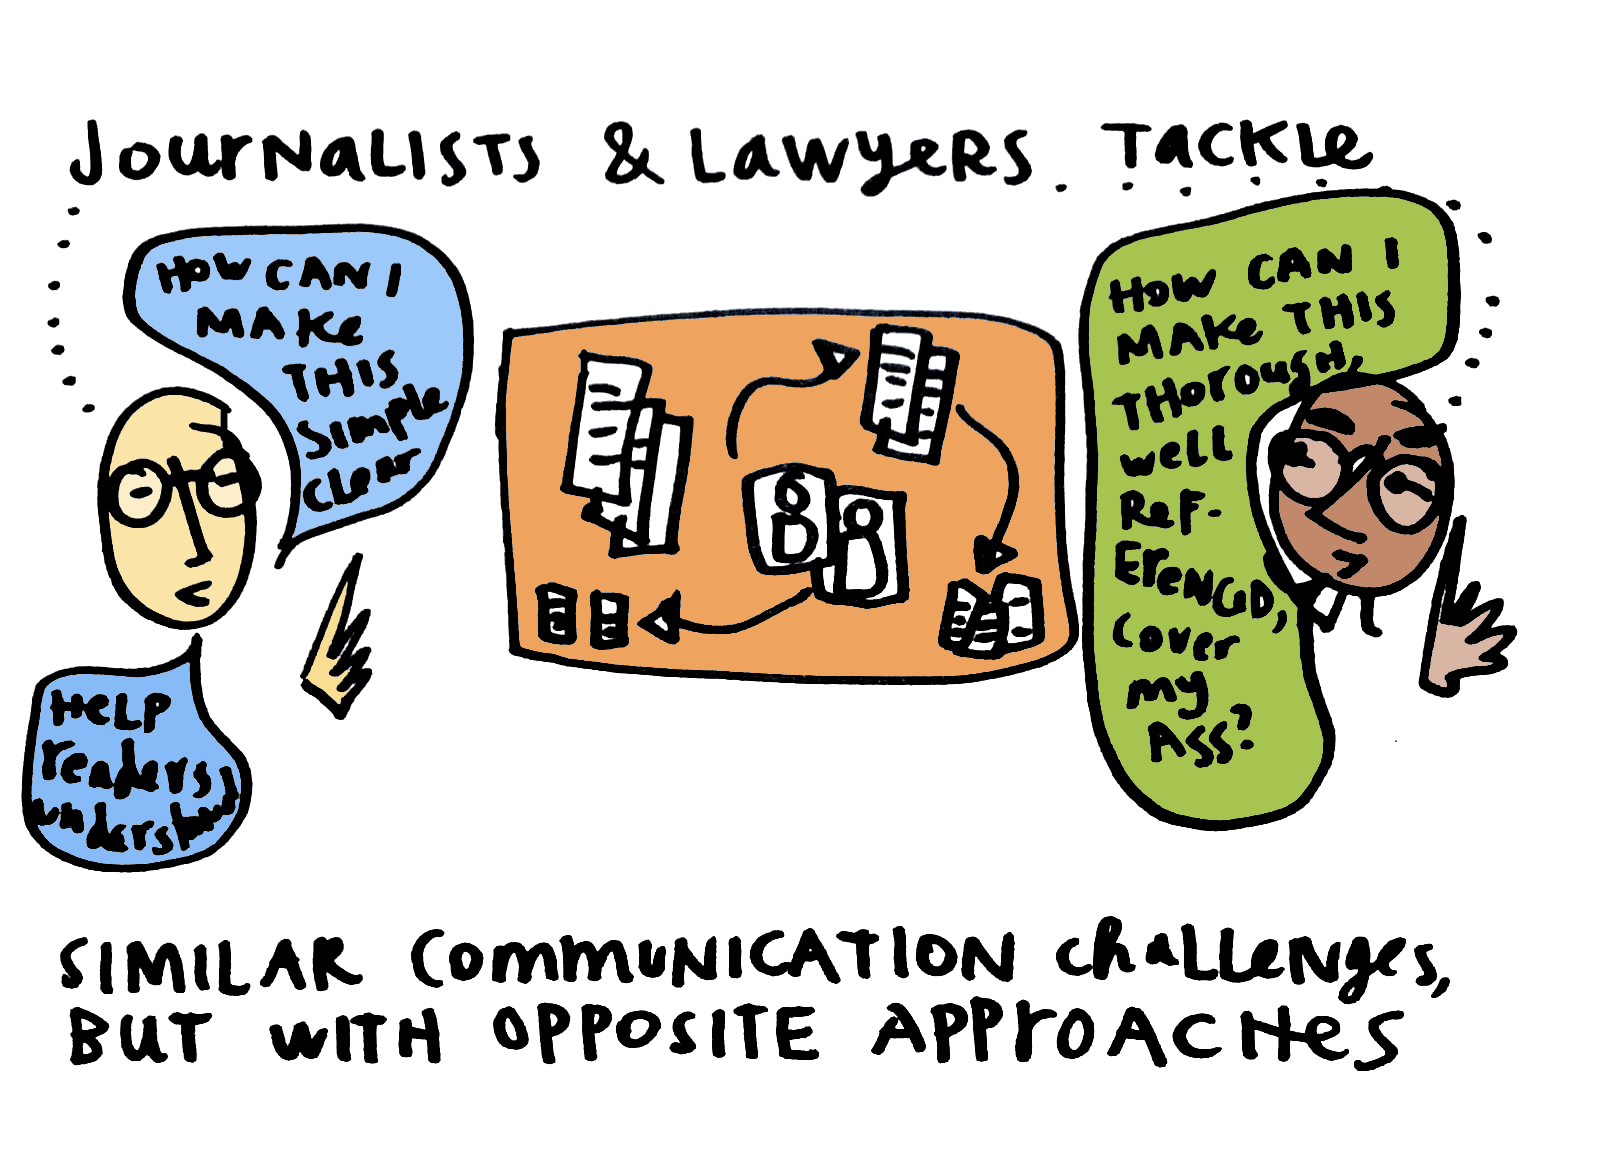 Visual Law Meetup takeaways - lawyers and journalists opposite approaches